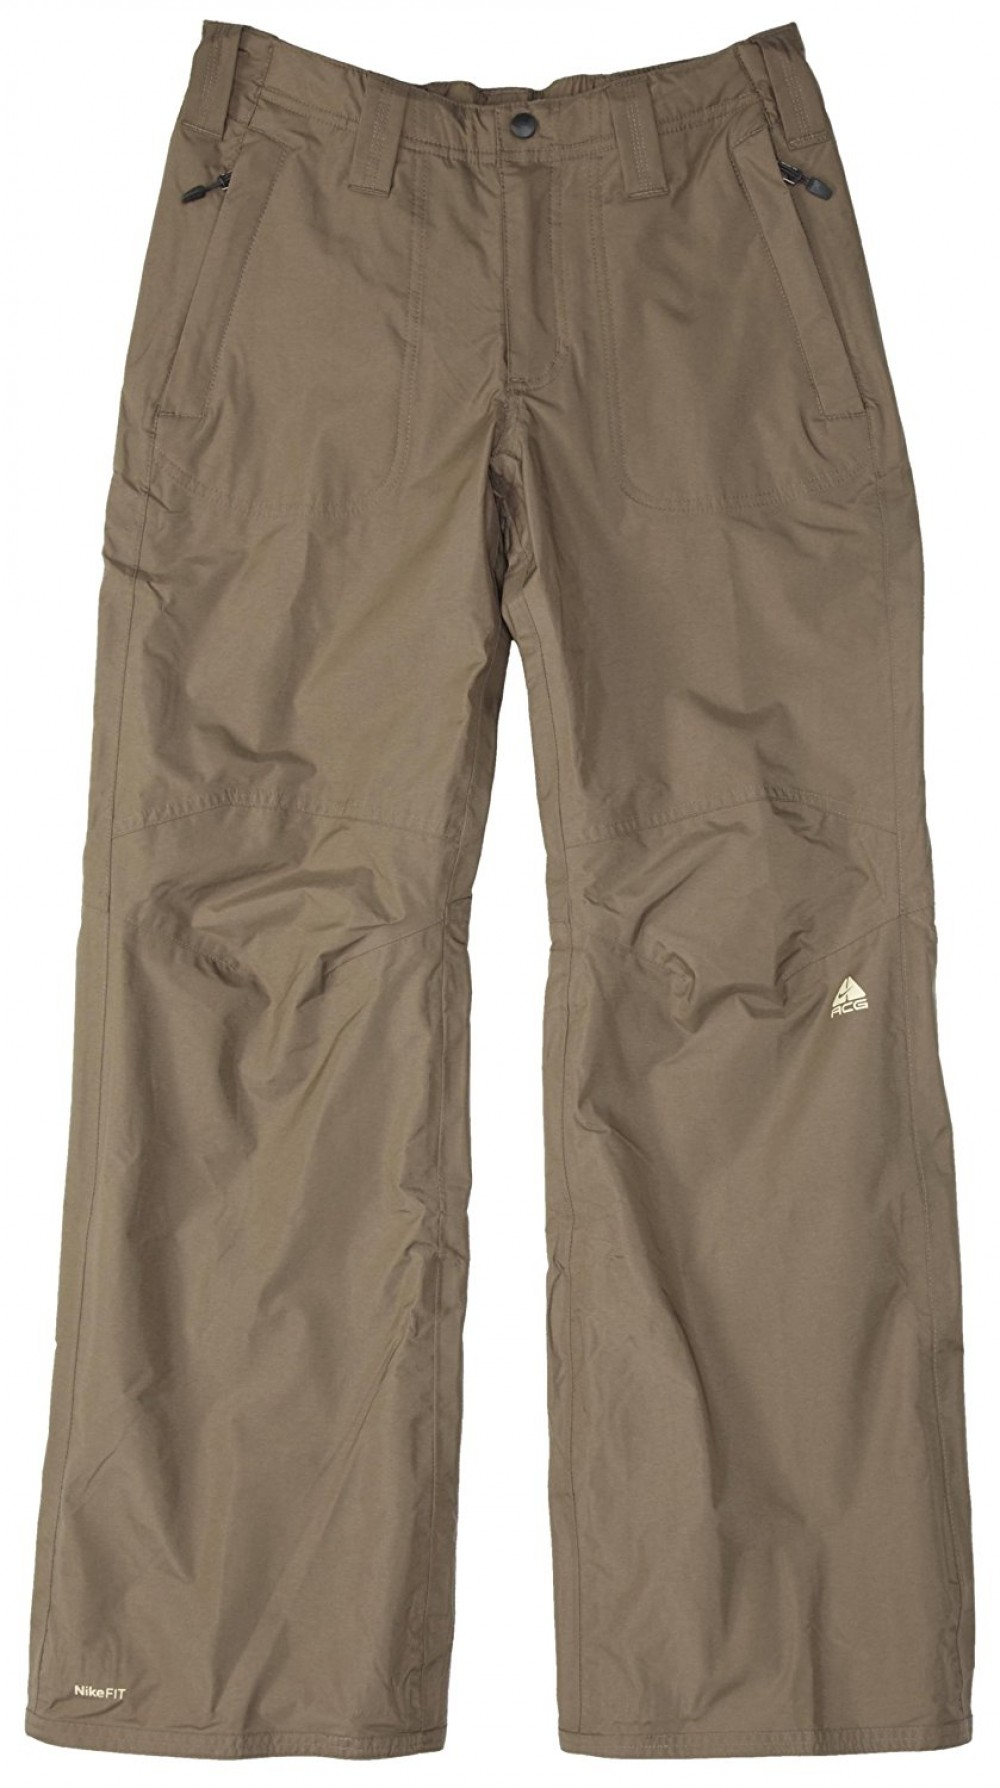 Штаны NIKE acg performance pants lady (размер XS) - 18516